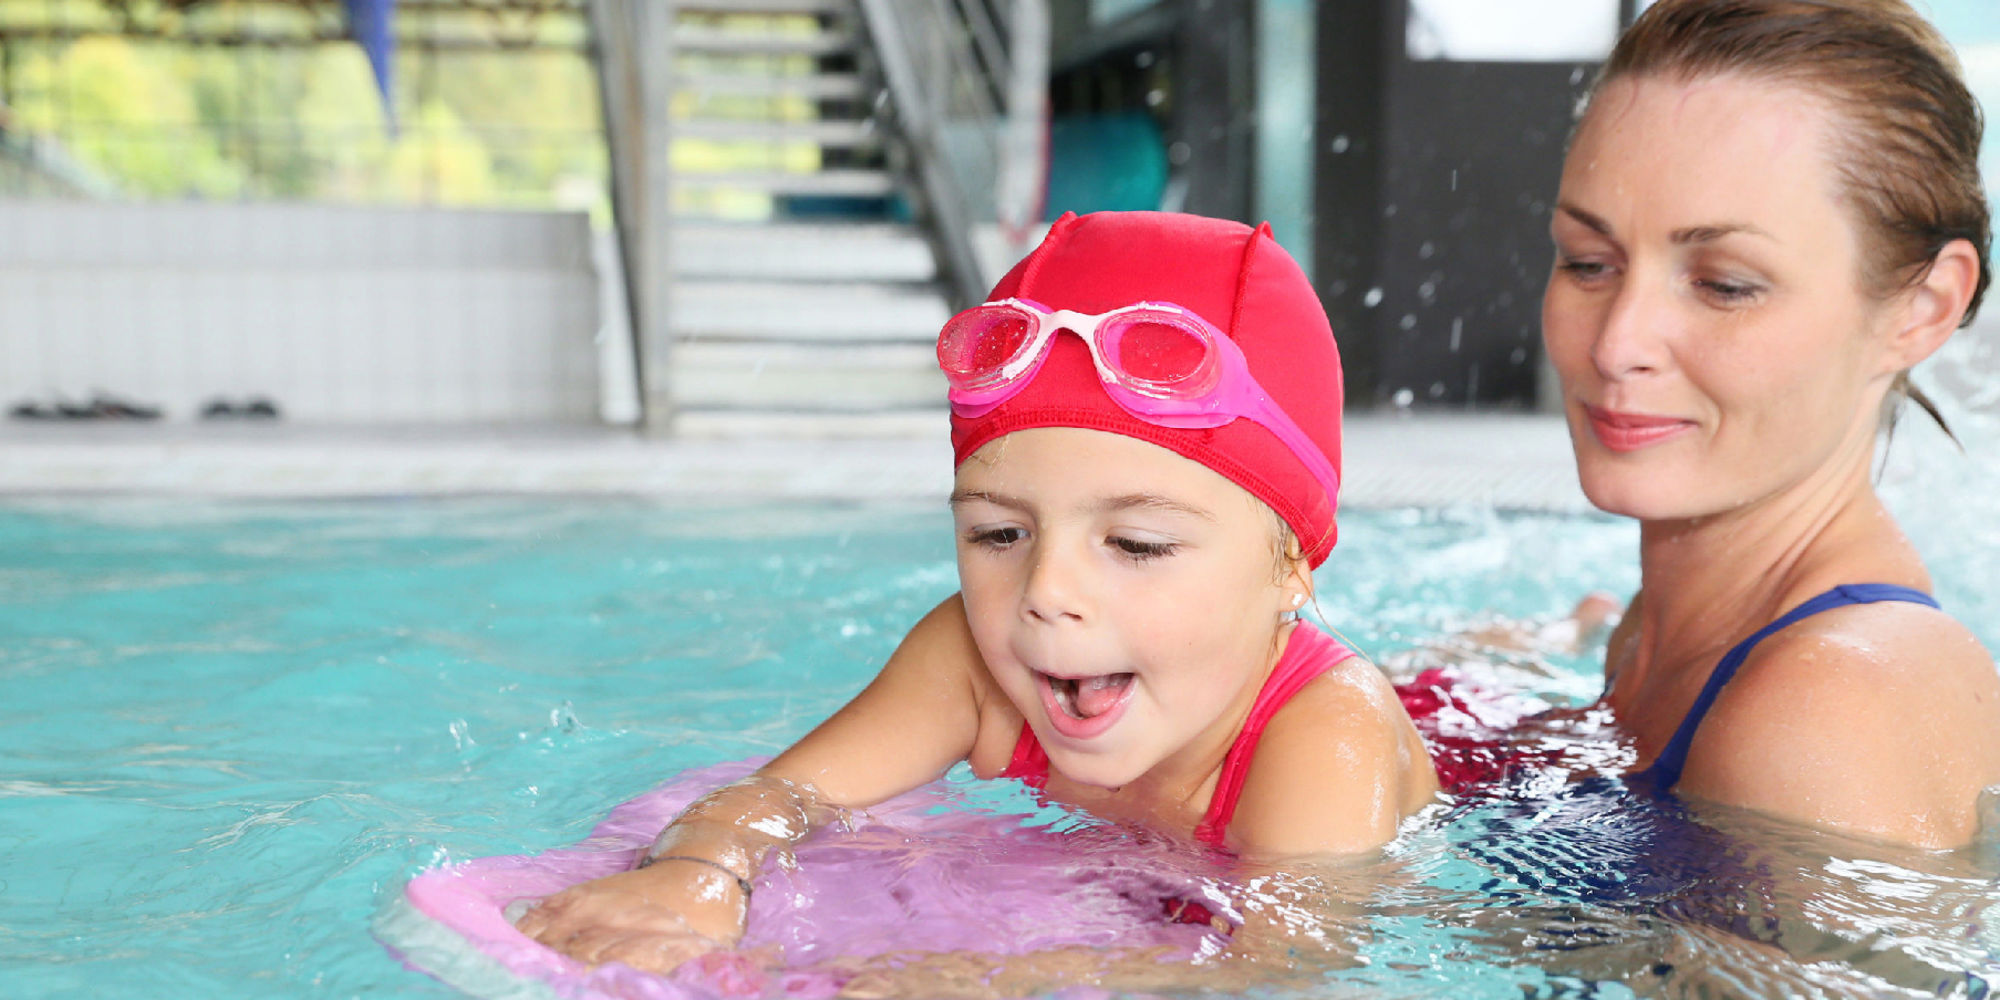 May 2021 Drowning Prevention Month - Drowning Prevention Coalition of El Paso, Texas